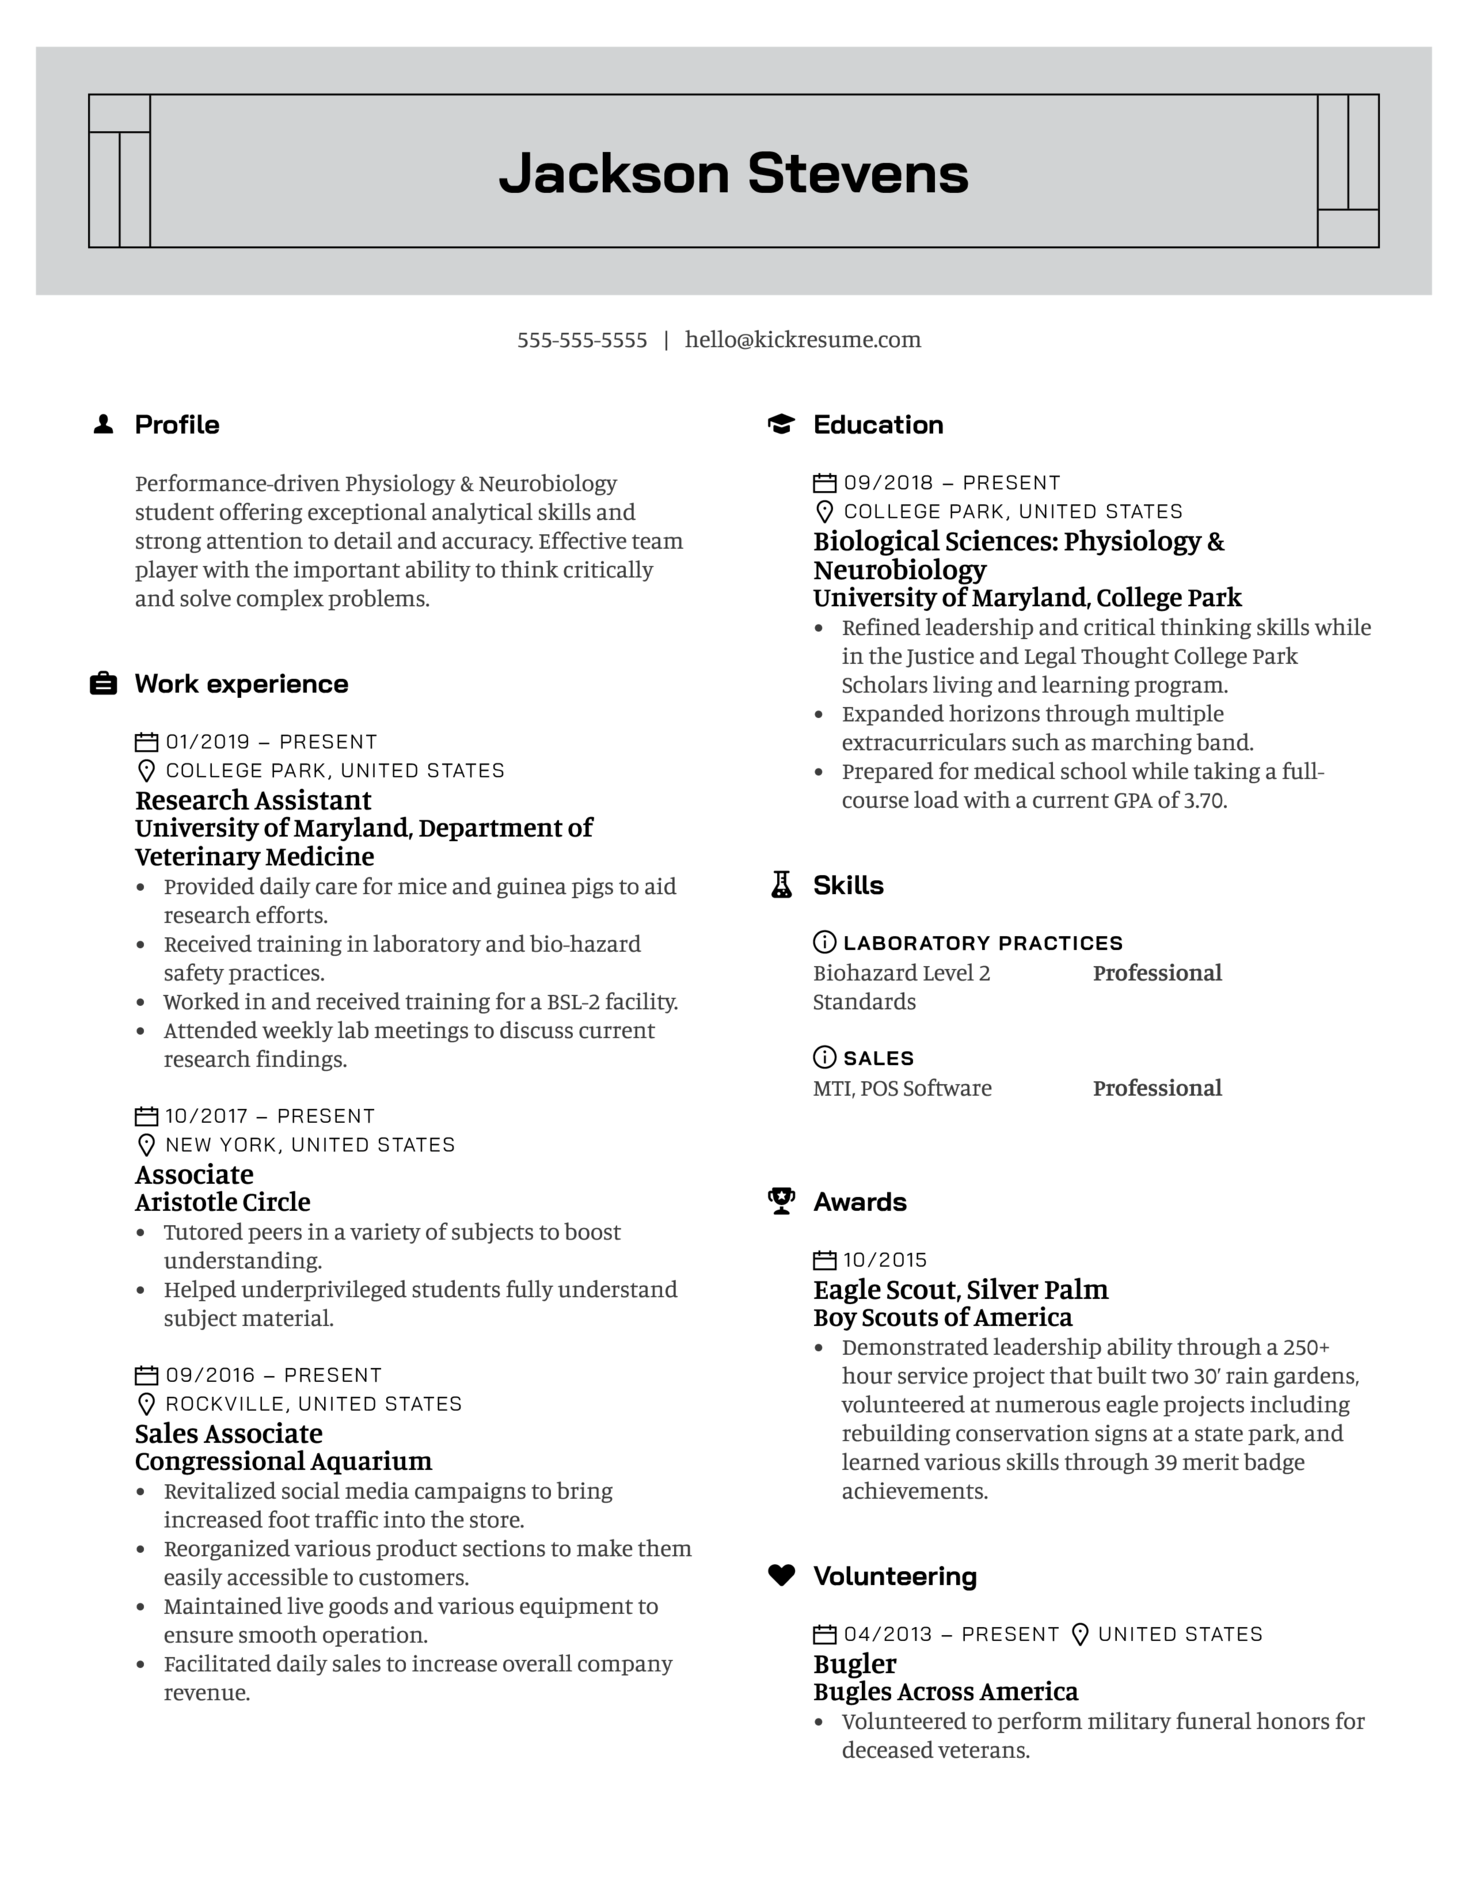 University of Maryland Research Assistant Resume Example (Part 1)